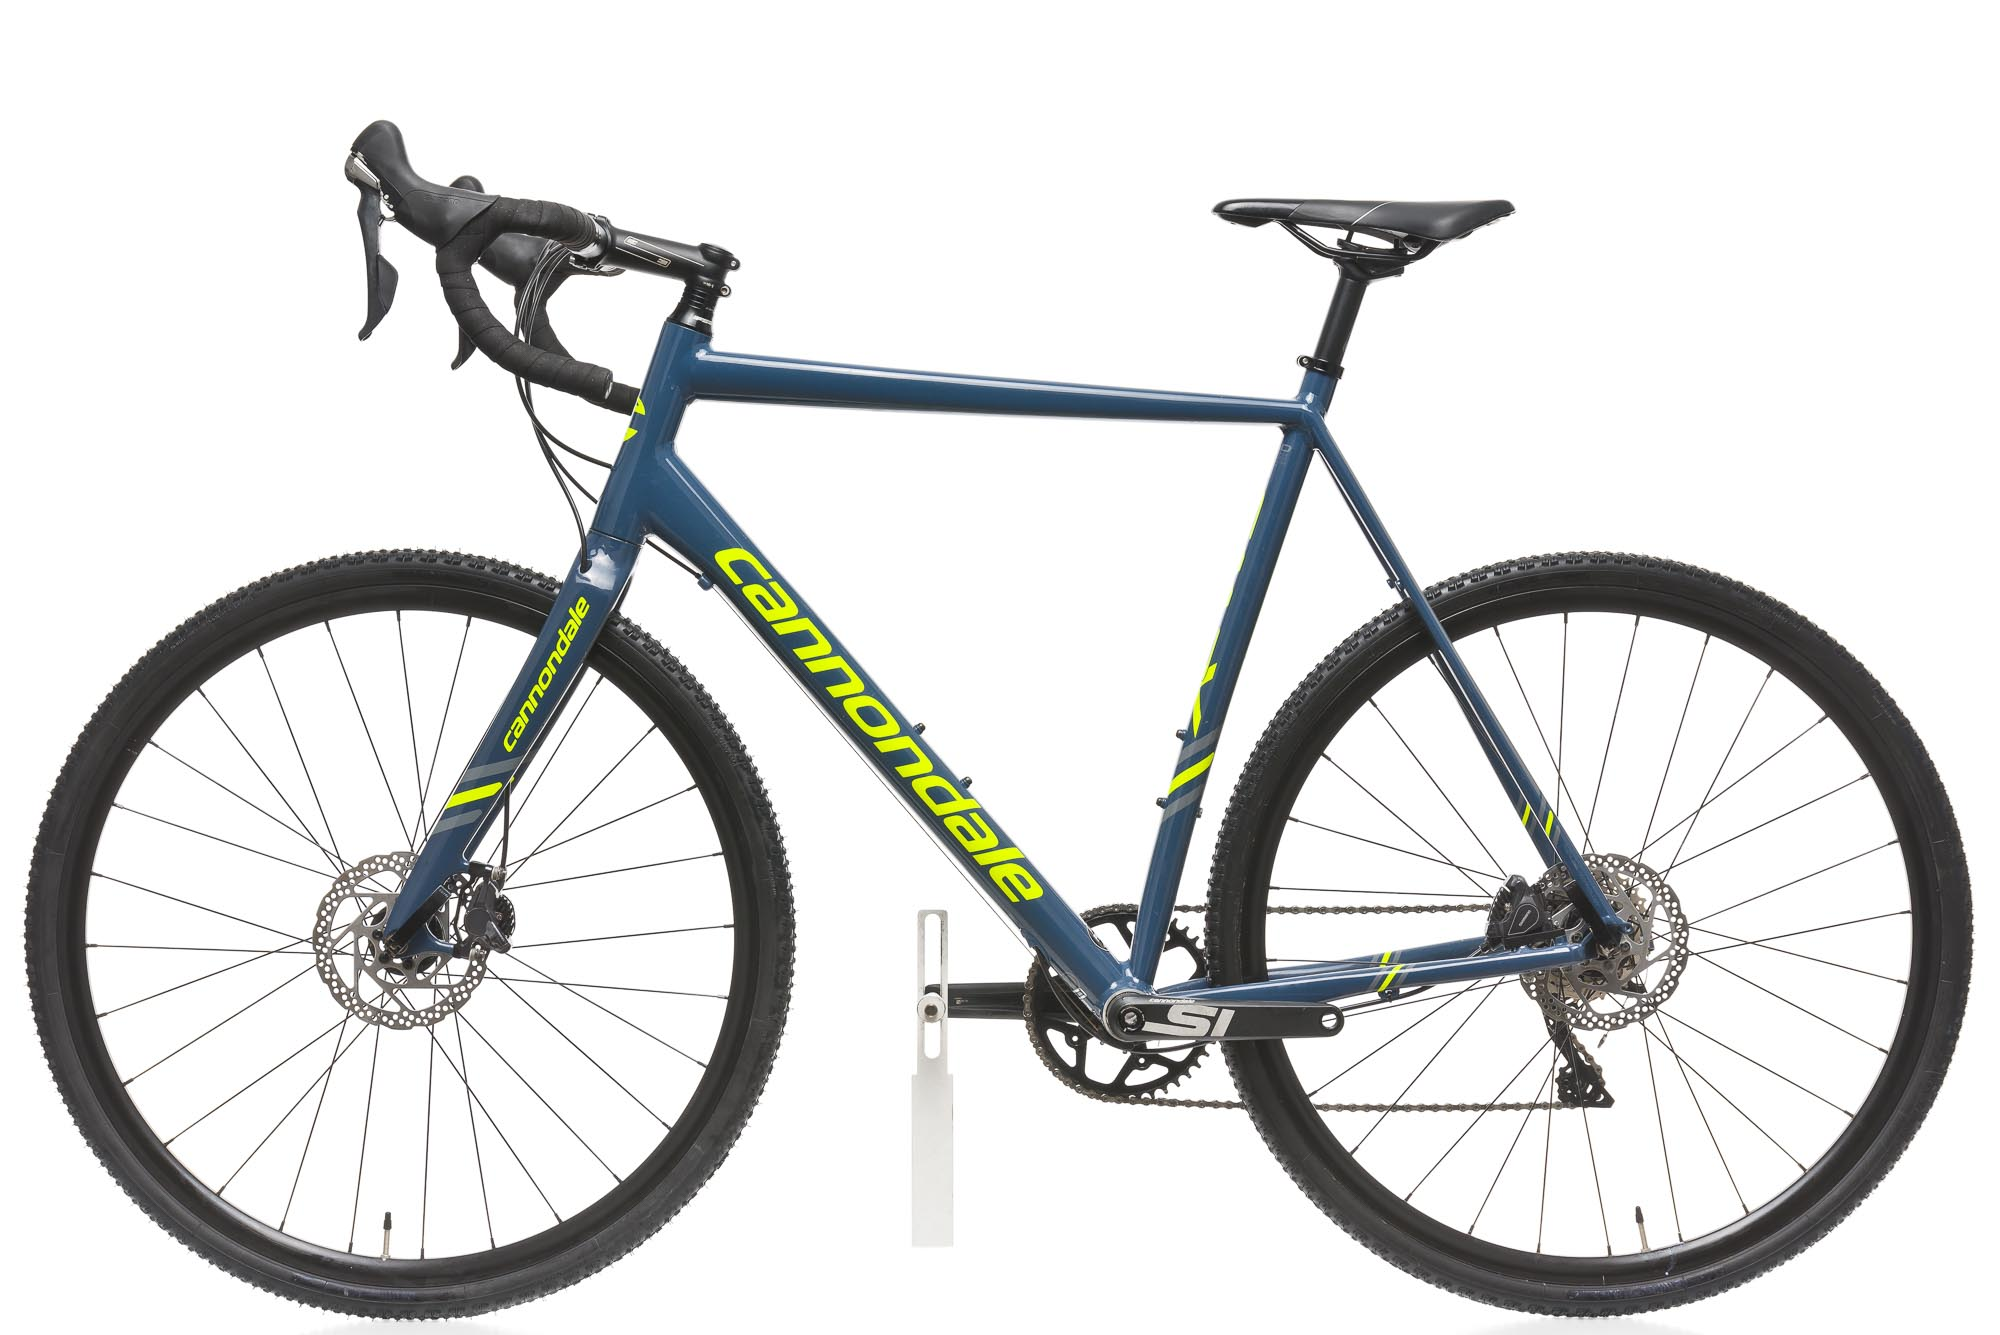 2018 cannondale caadx cyclocross bike 61cm xl aluminum. Black Bedroom Furniture Sets. Home Design Ideas